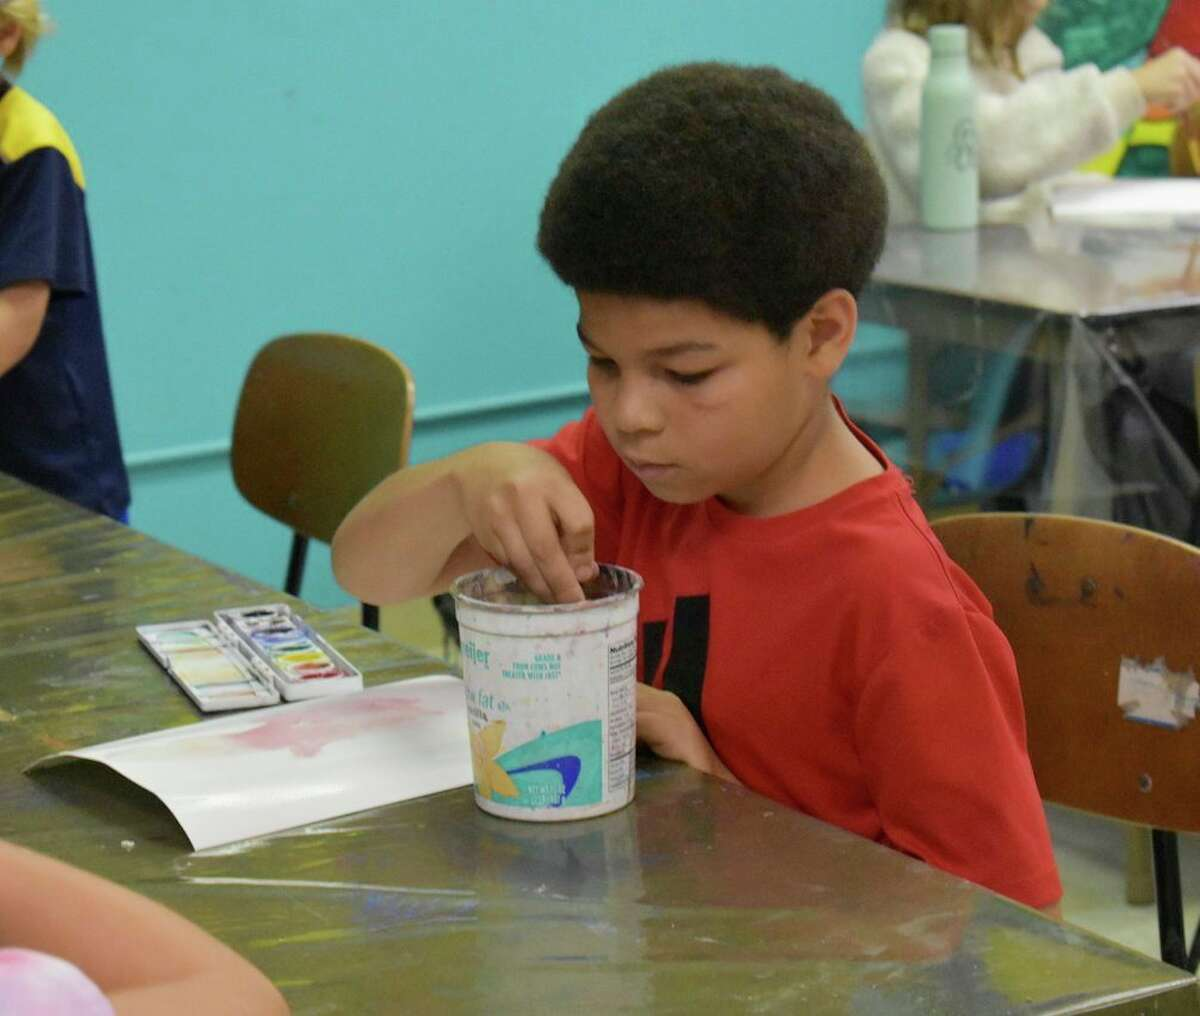 Students in kindergarten through eighth grade gathered at Artworks on Wednesday afternoon for a watercolor creativity challenge. After painting a watercolor picture, instructor Leanna Grant taught them how to see hidden shapes and images in their creations. (Pioneer photo/Olivia Fellows)